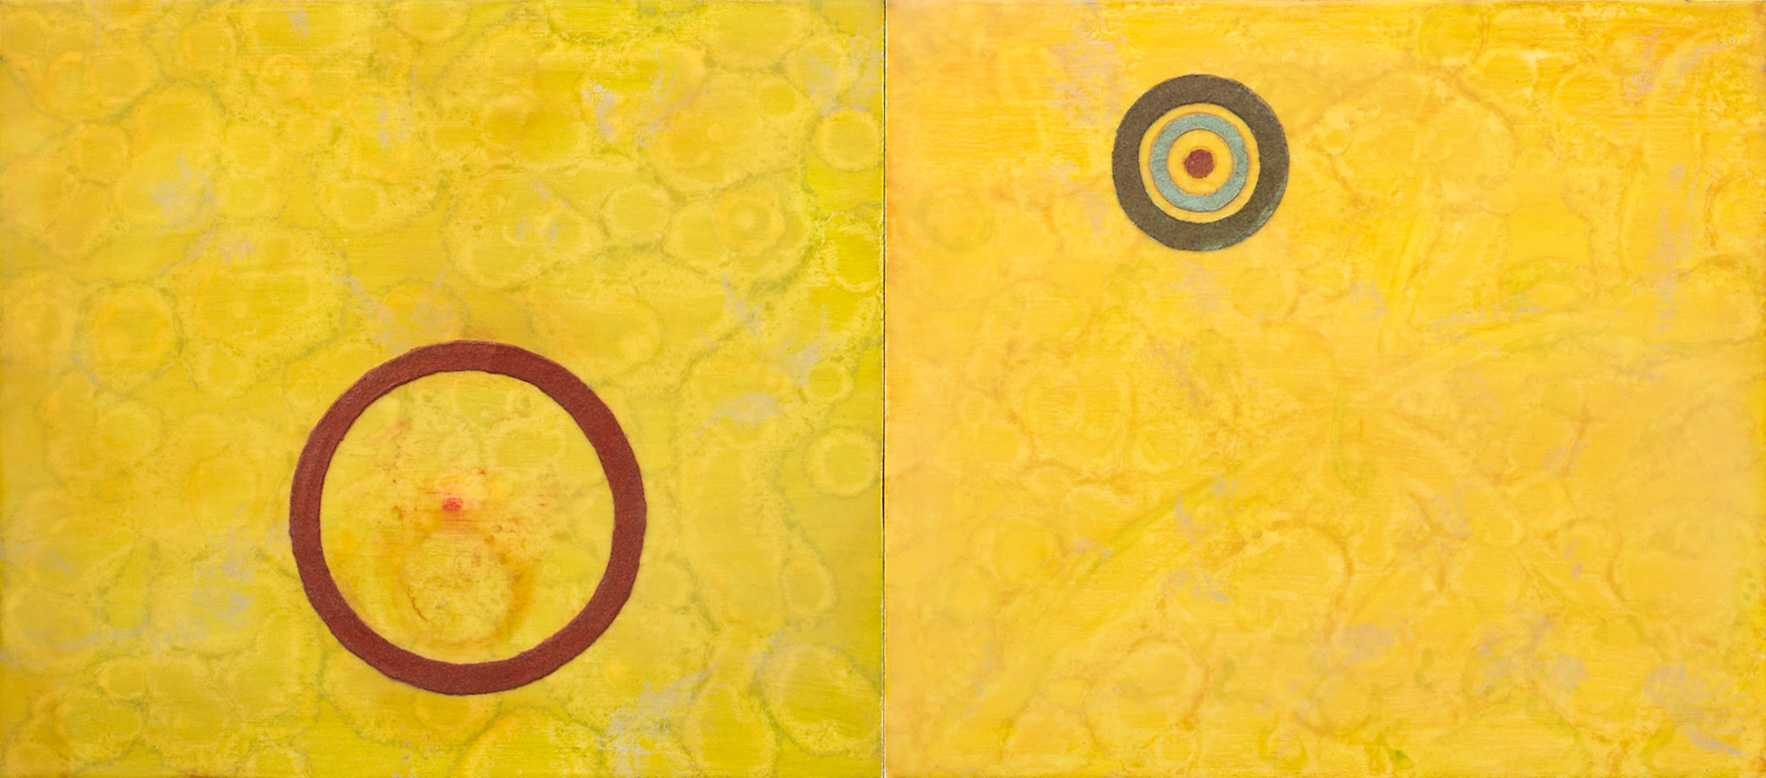 """Gemini"", encaustic painting on panel, 14"" x 31.5"" © Tom Gormally"